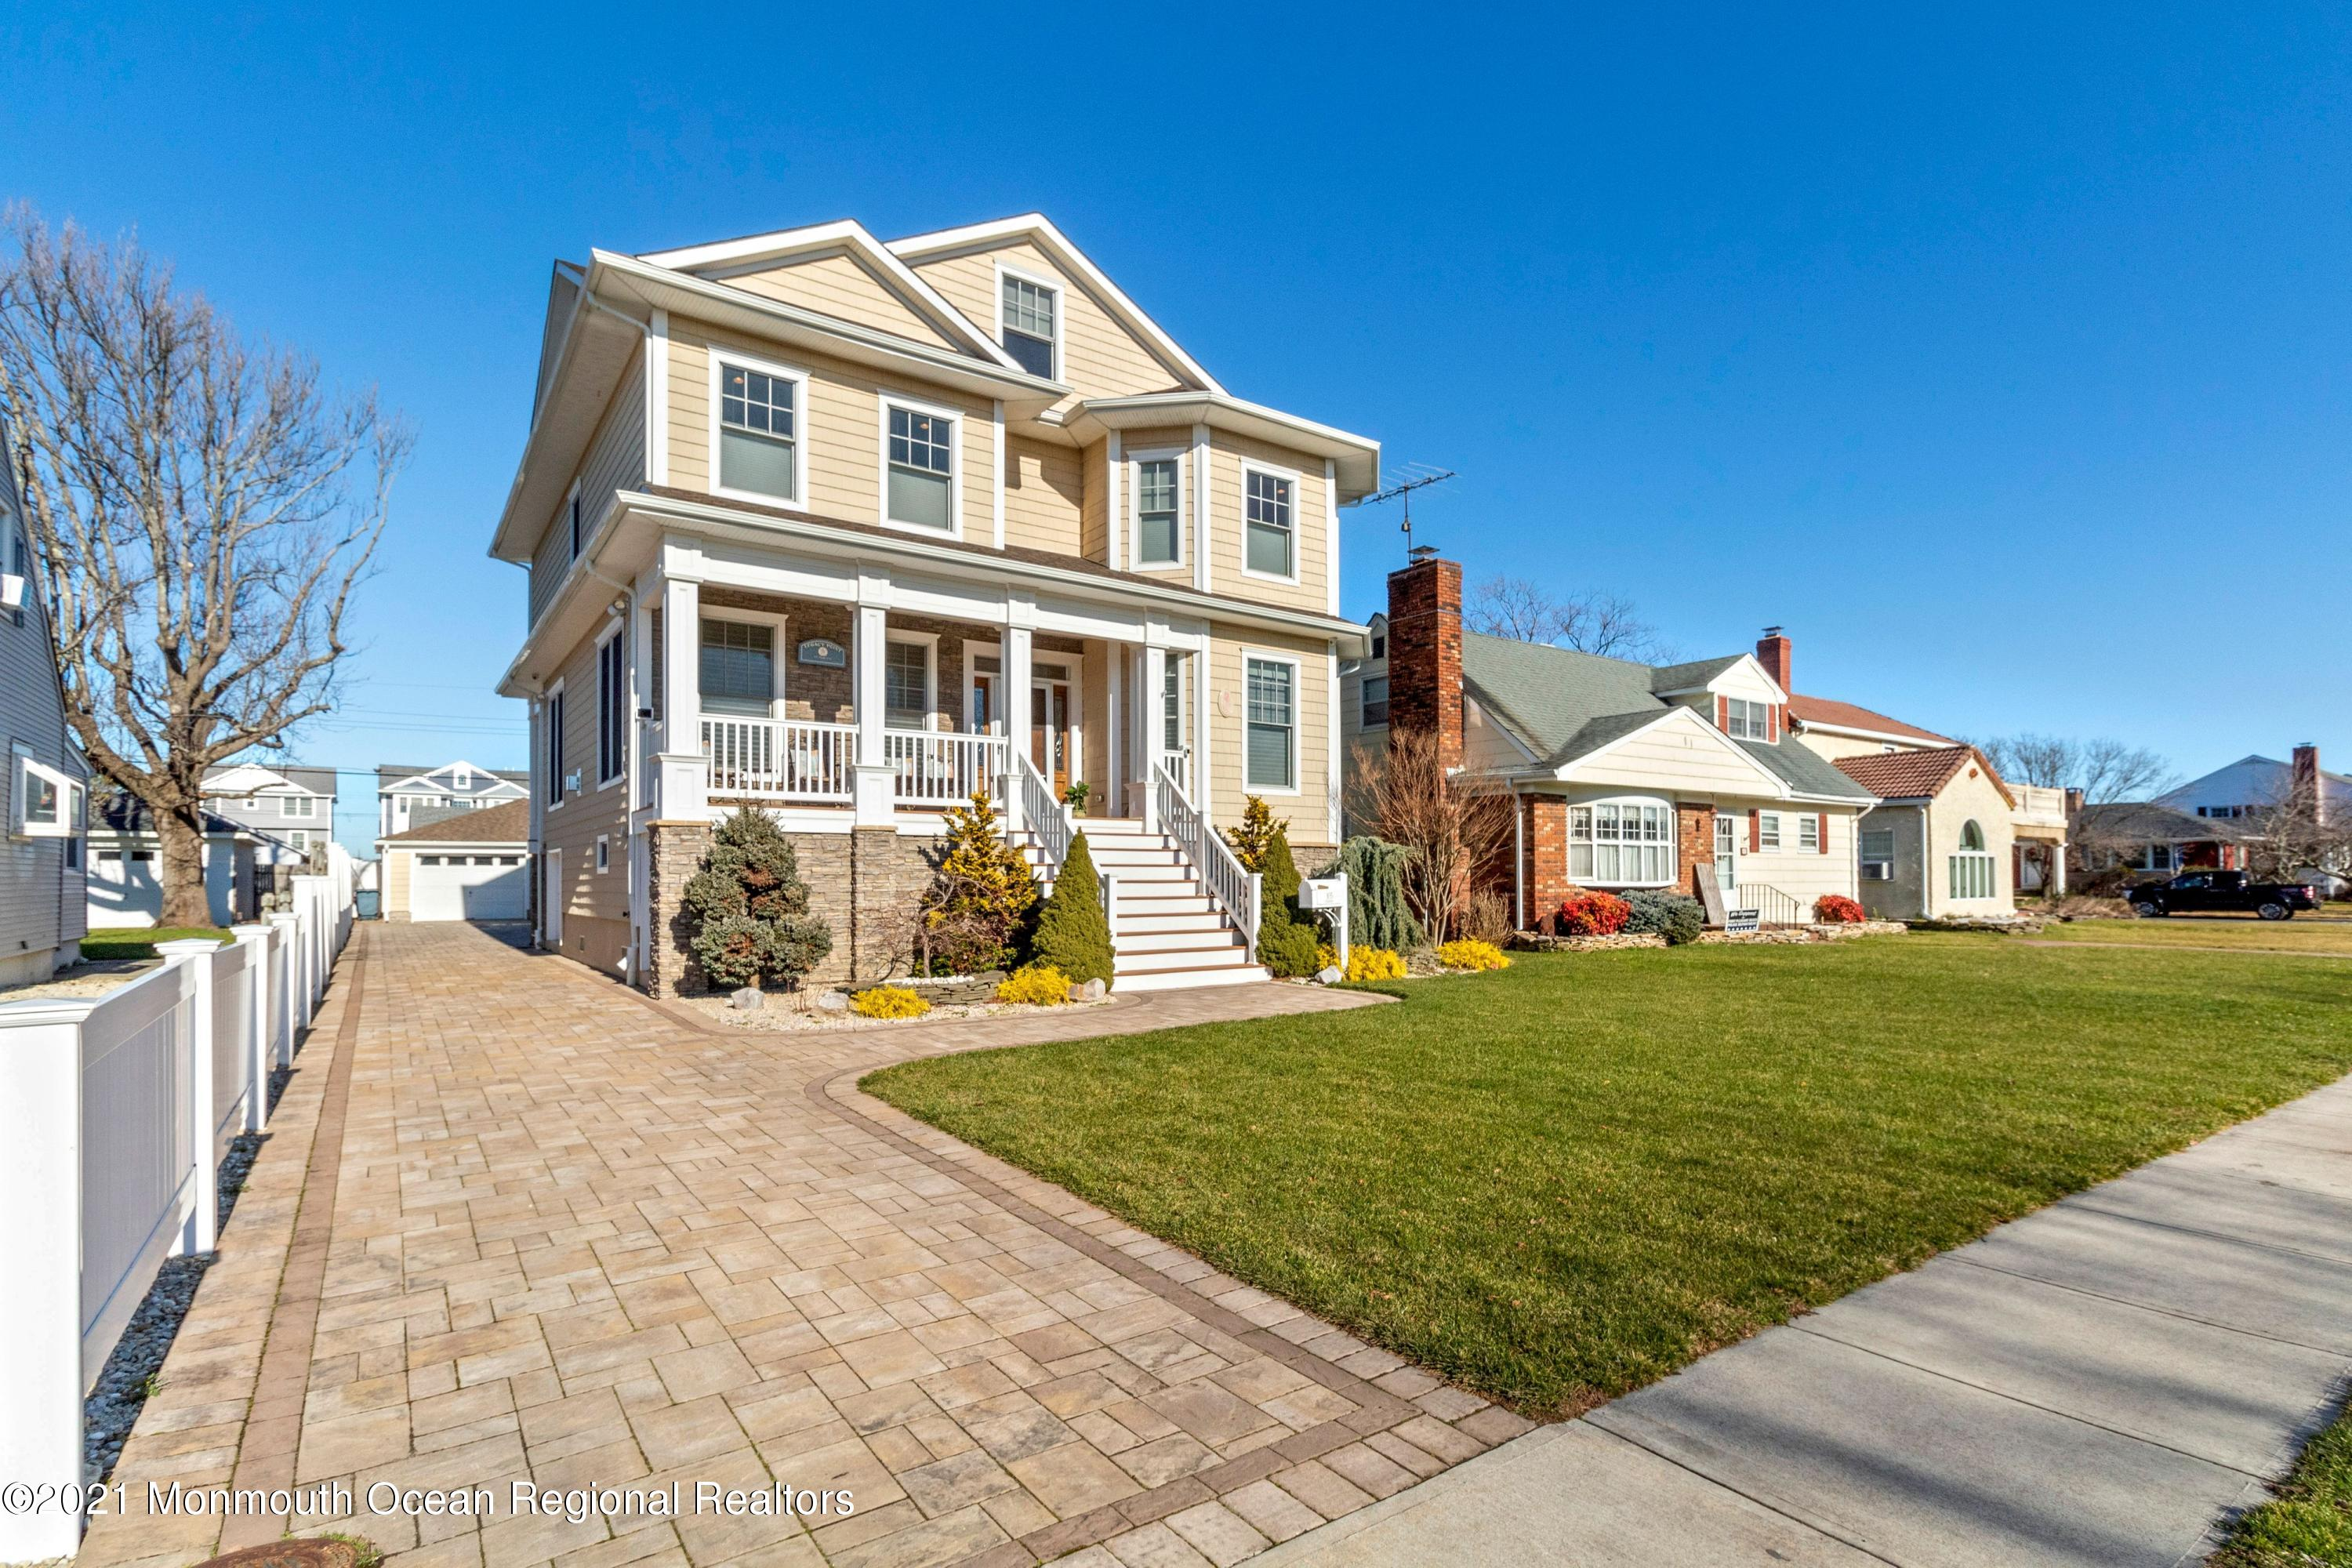 Photo of 105 Parkway, Point Pleasant Beach, NJ 08742